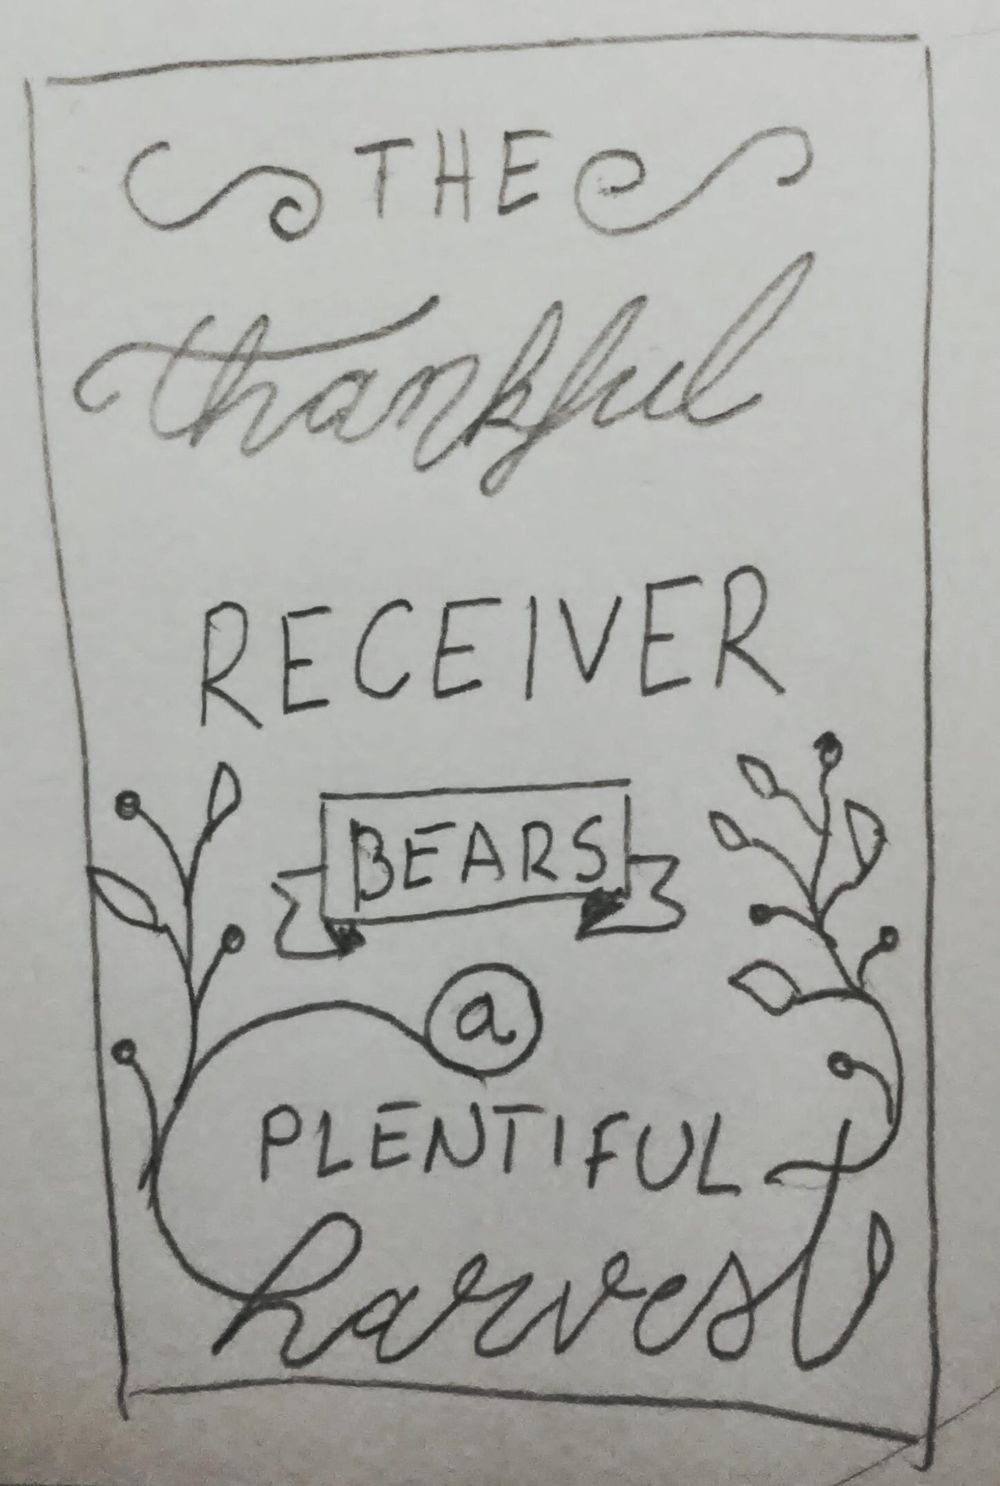 The thankful receiver - image 2 - student project